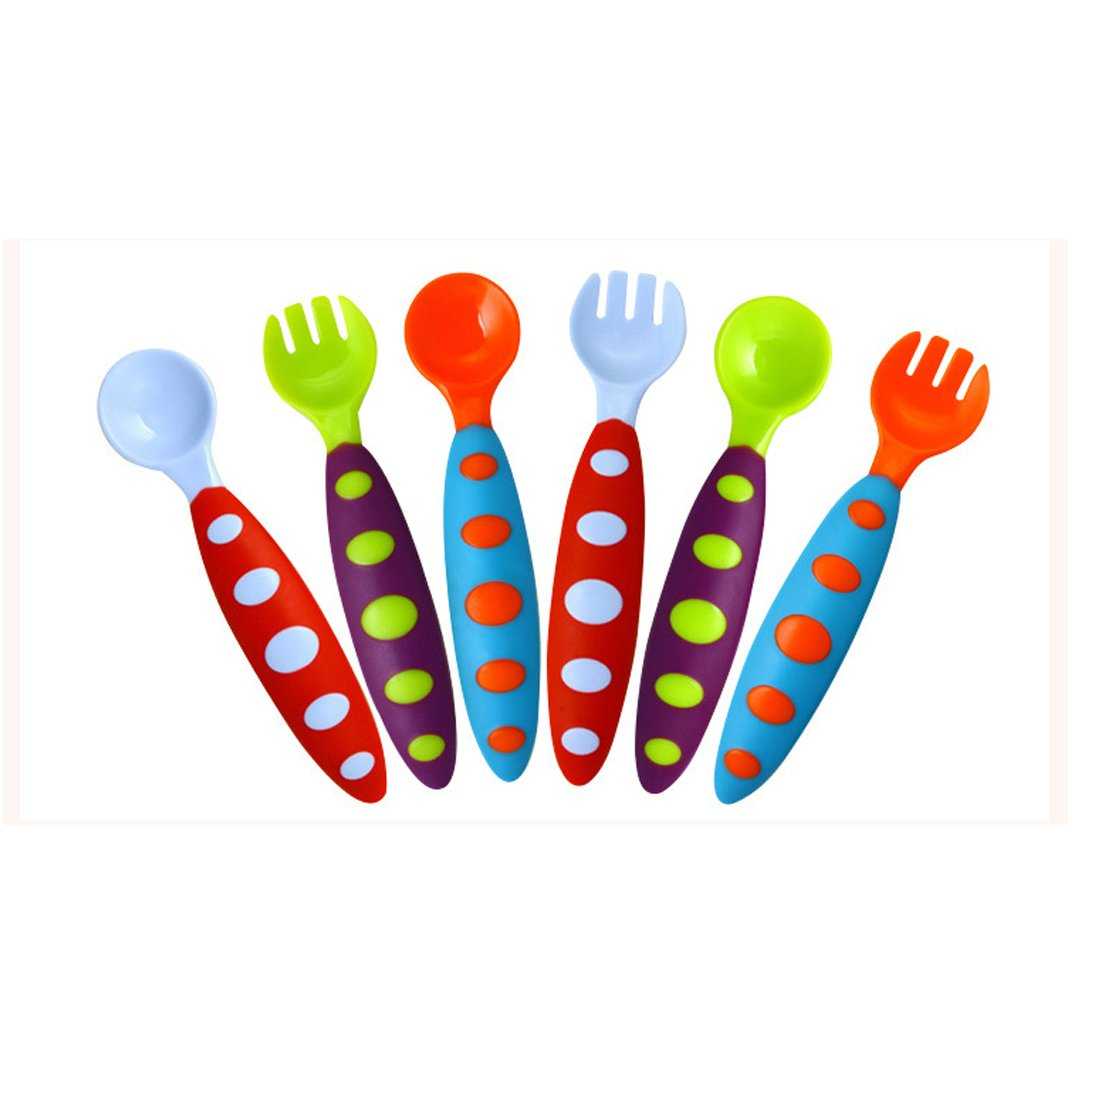 QXT toddler utensils baby fork and spoon set - bonus travel case - travel safe toddler training spoons (6-Piece Set)